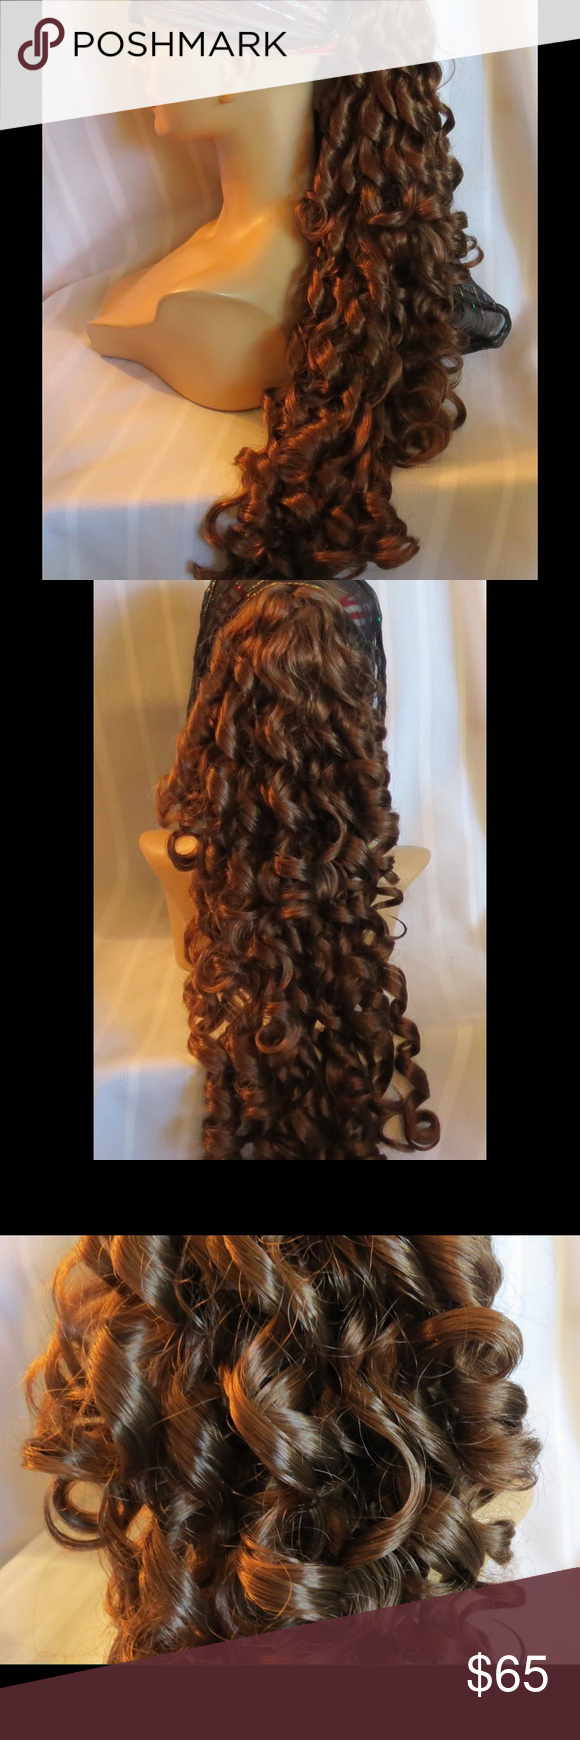 """NEW High Quality XTRA LONG Curly Clip On Pony Tail Color Auburn  34 """" Long  Clip: Banana  Medication made me lose my hair. I stocked up on a ton of wigs that I loved just in case they stopped making them. These are not Halloween cheapo costume wigs they are very thick full high quality wigs,  I paid $50-150 for the ones I am selling! A special note about colors, all manufactures are different, so if you are looking for an exact match or have something in your mind don't buy, please go by the…"""